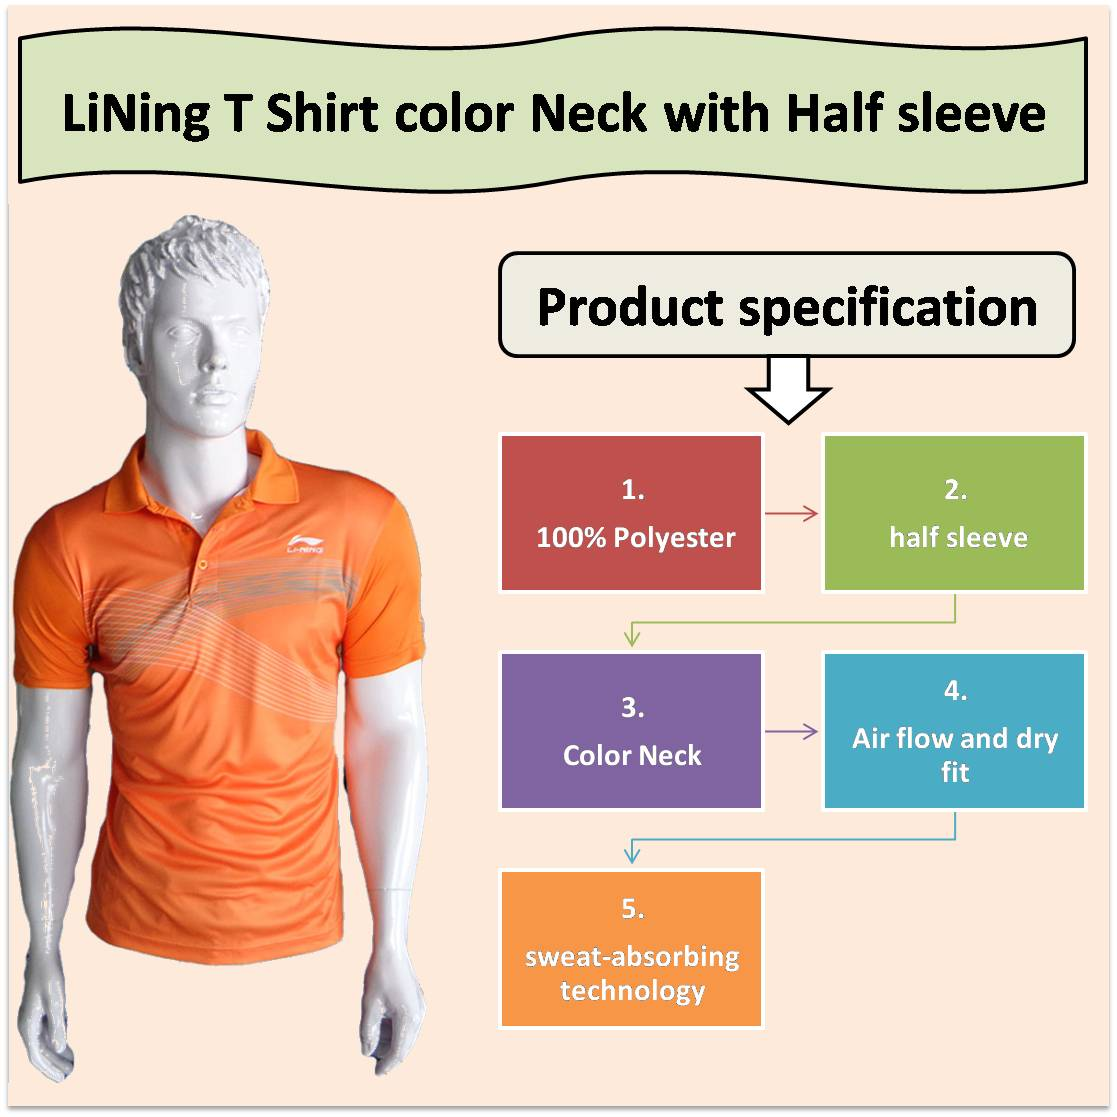 LiNing T Shirt color Neck with Half sleeve Orange